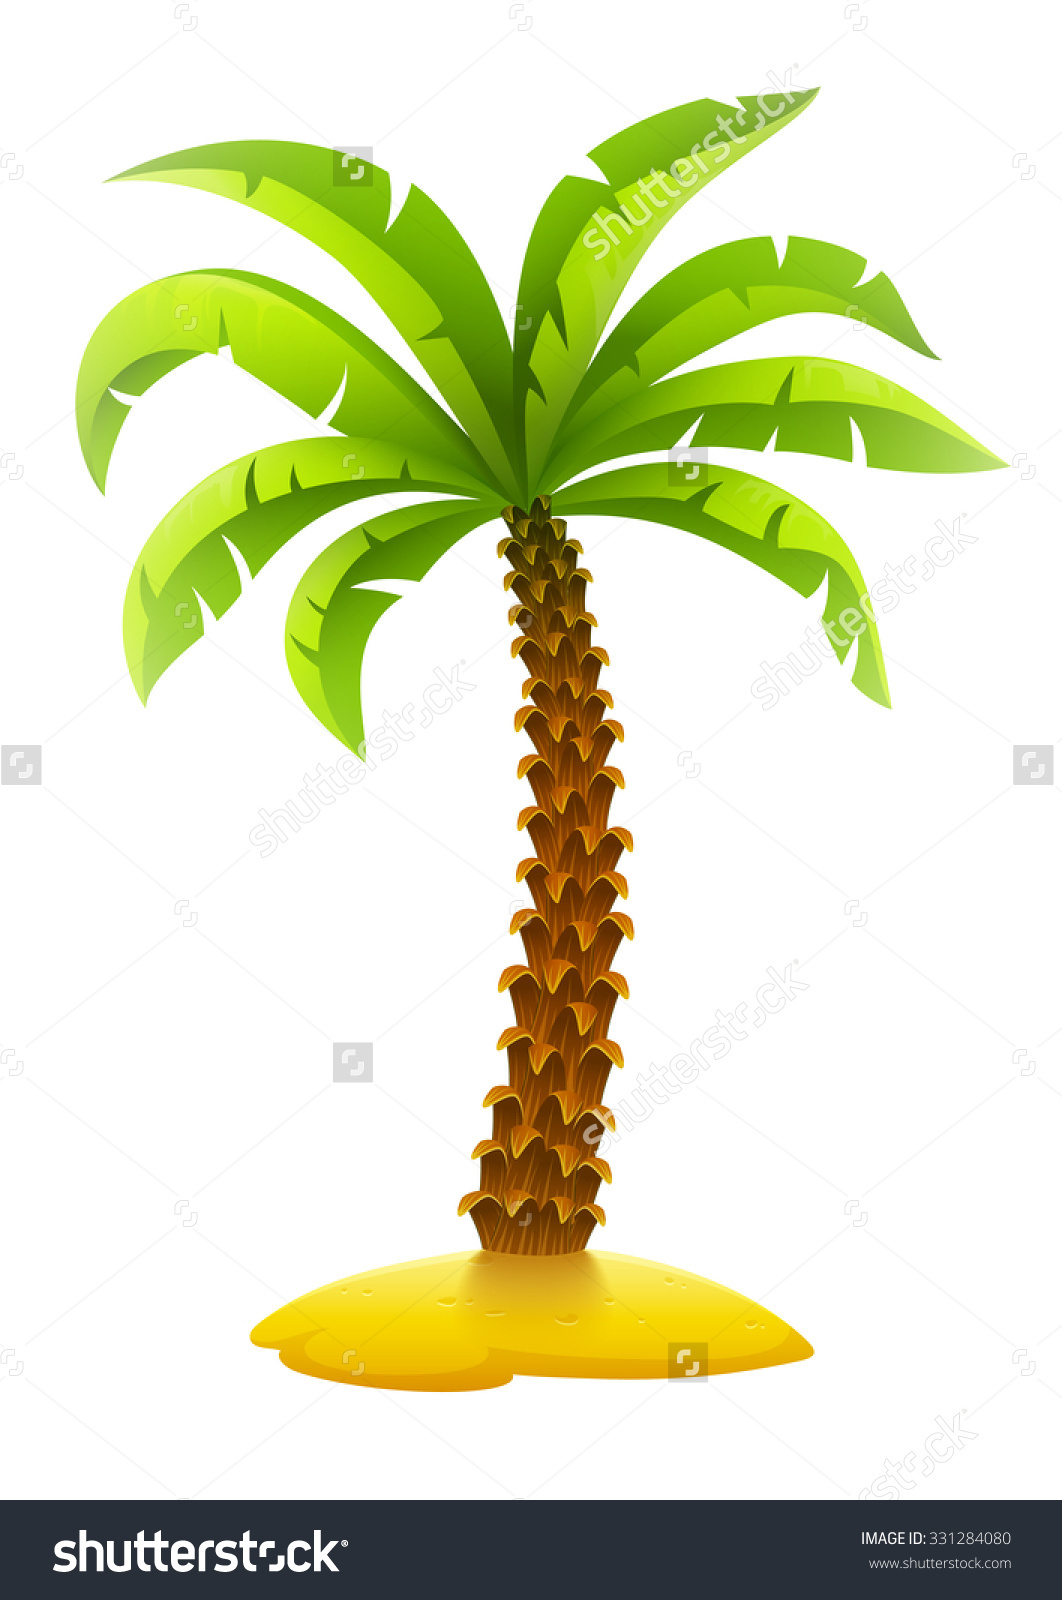 Sand island clipart 20 free Cliparts | Download images on ...